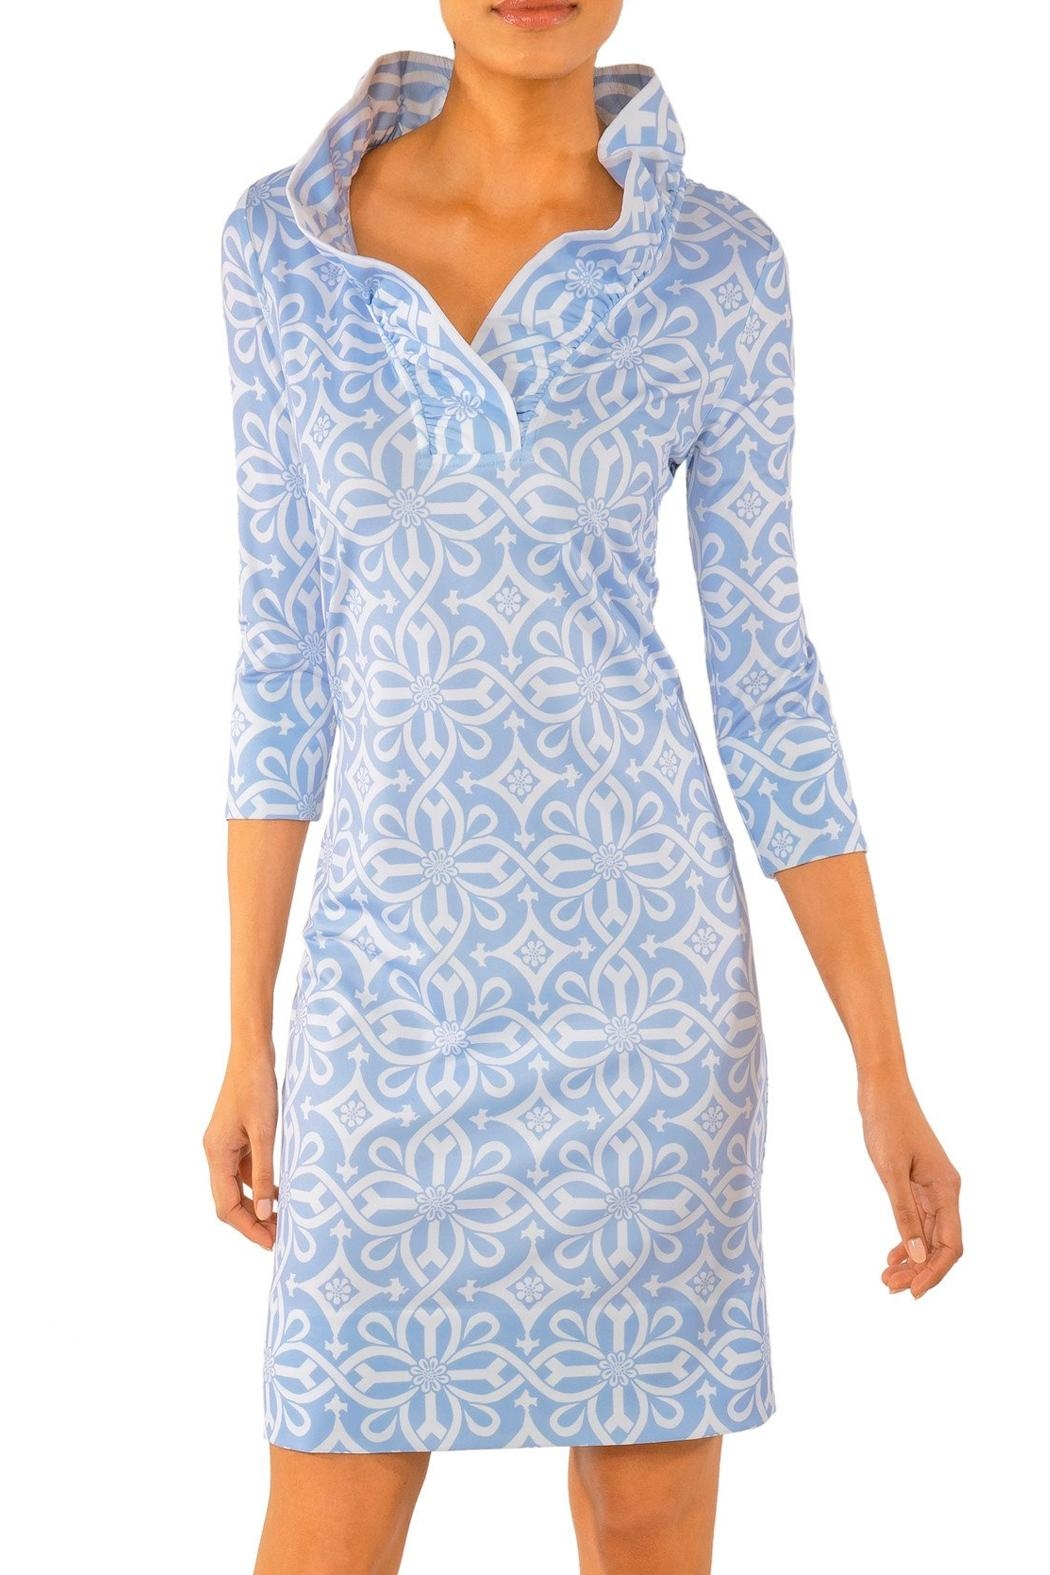 Gretchen Scott Jersey Ruffneck Dress-Piazza - Main Image